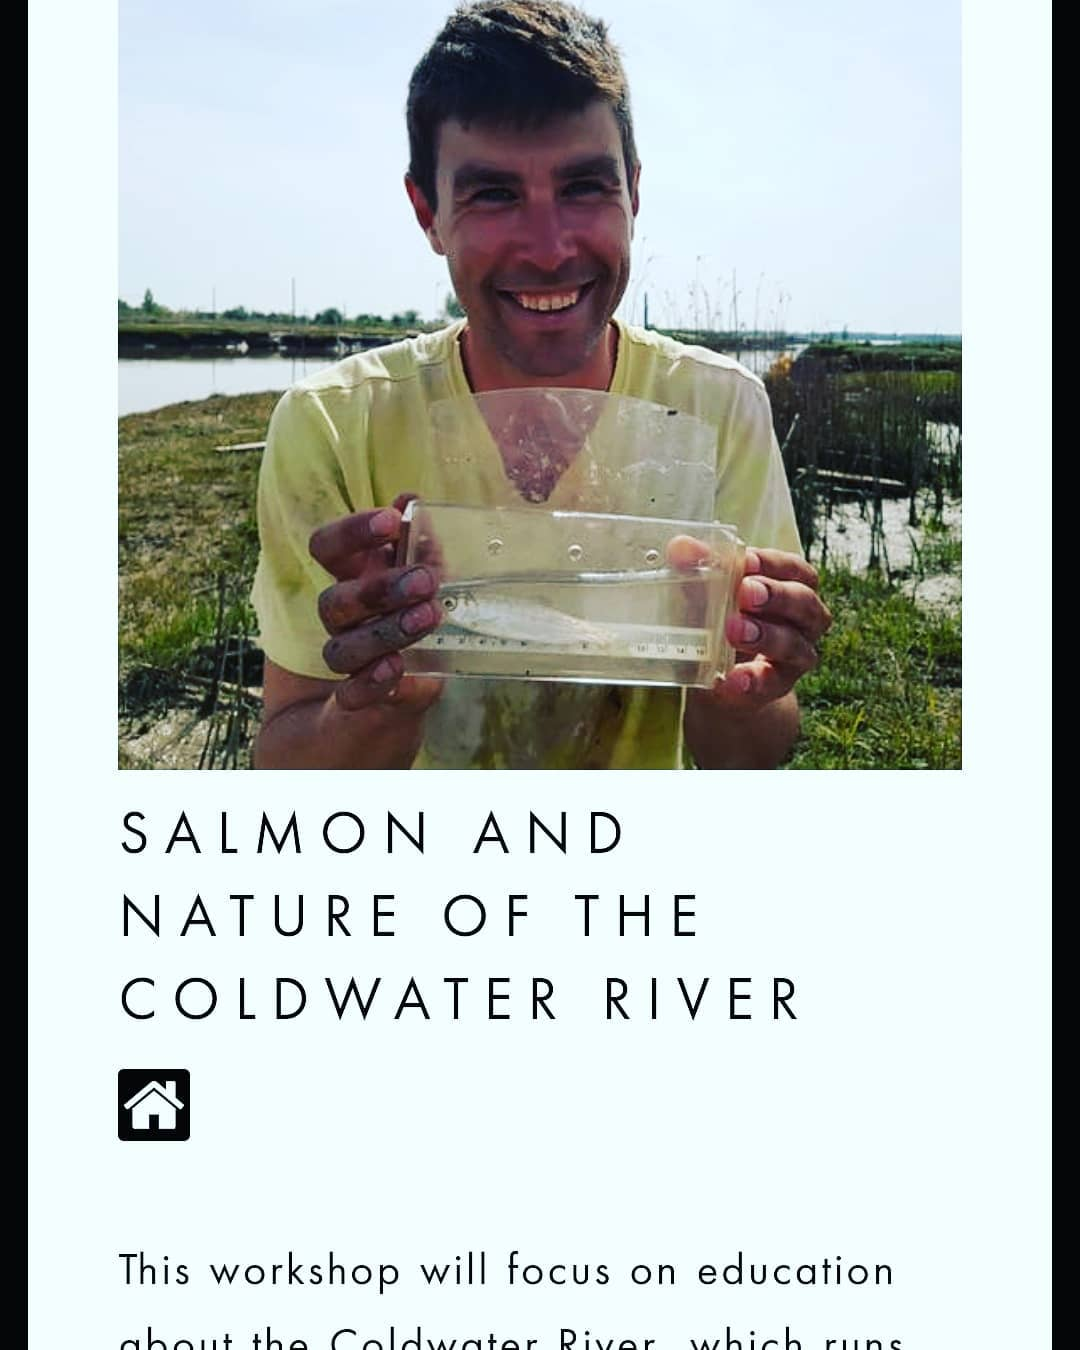 """A picture of Dave holding a tub of water with a silver fish in it, and beaming. Underneath it reads """"Salmon and Nature of the Coldwater River."""""""